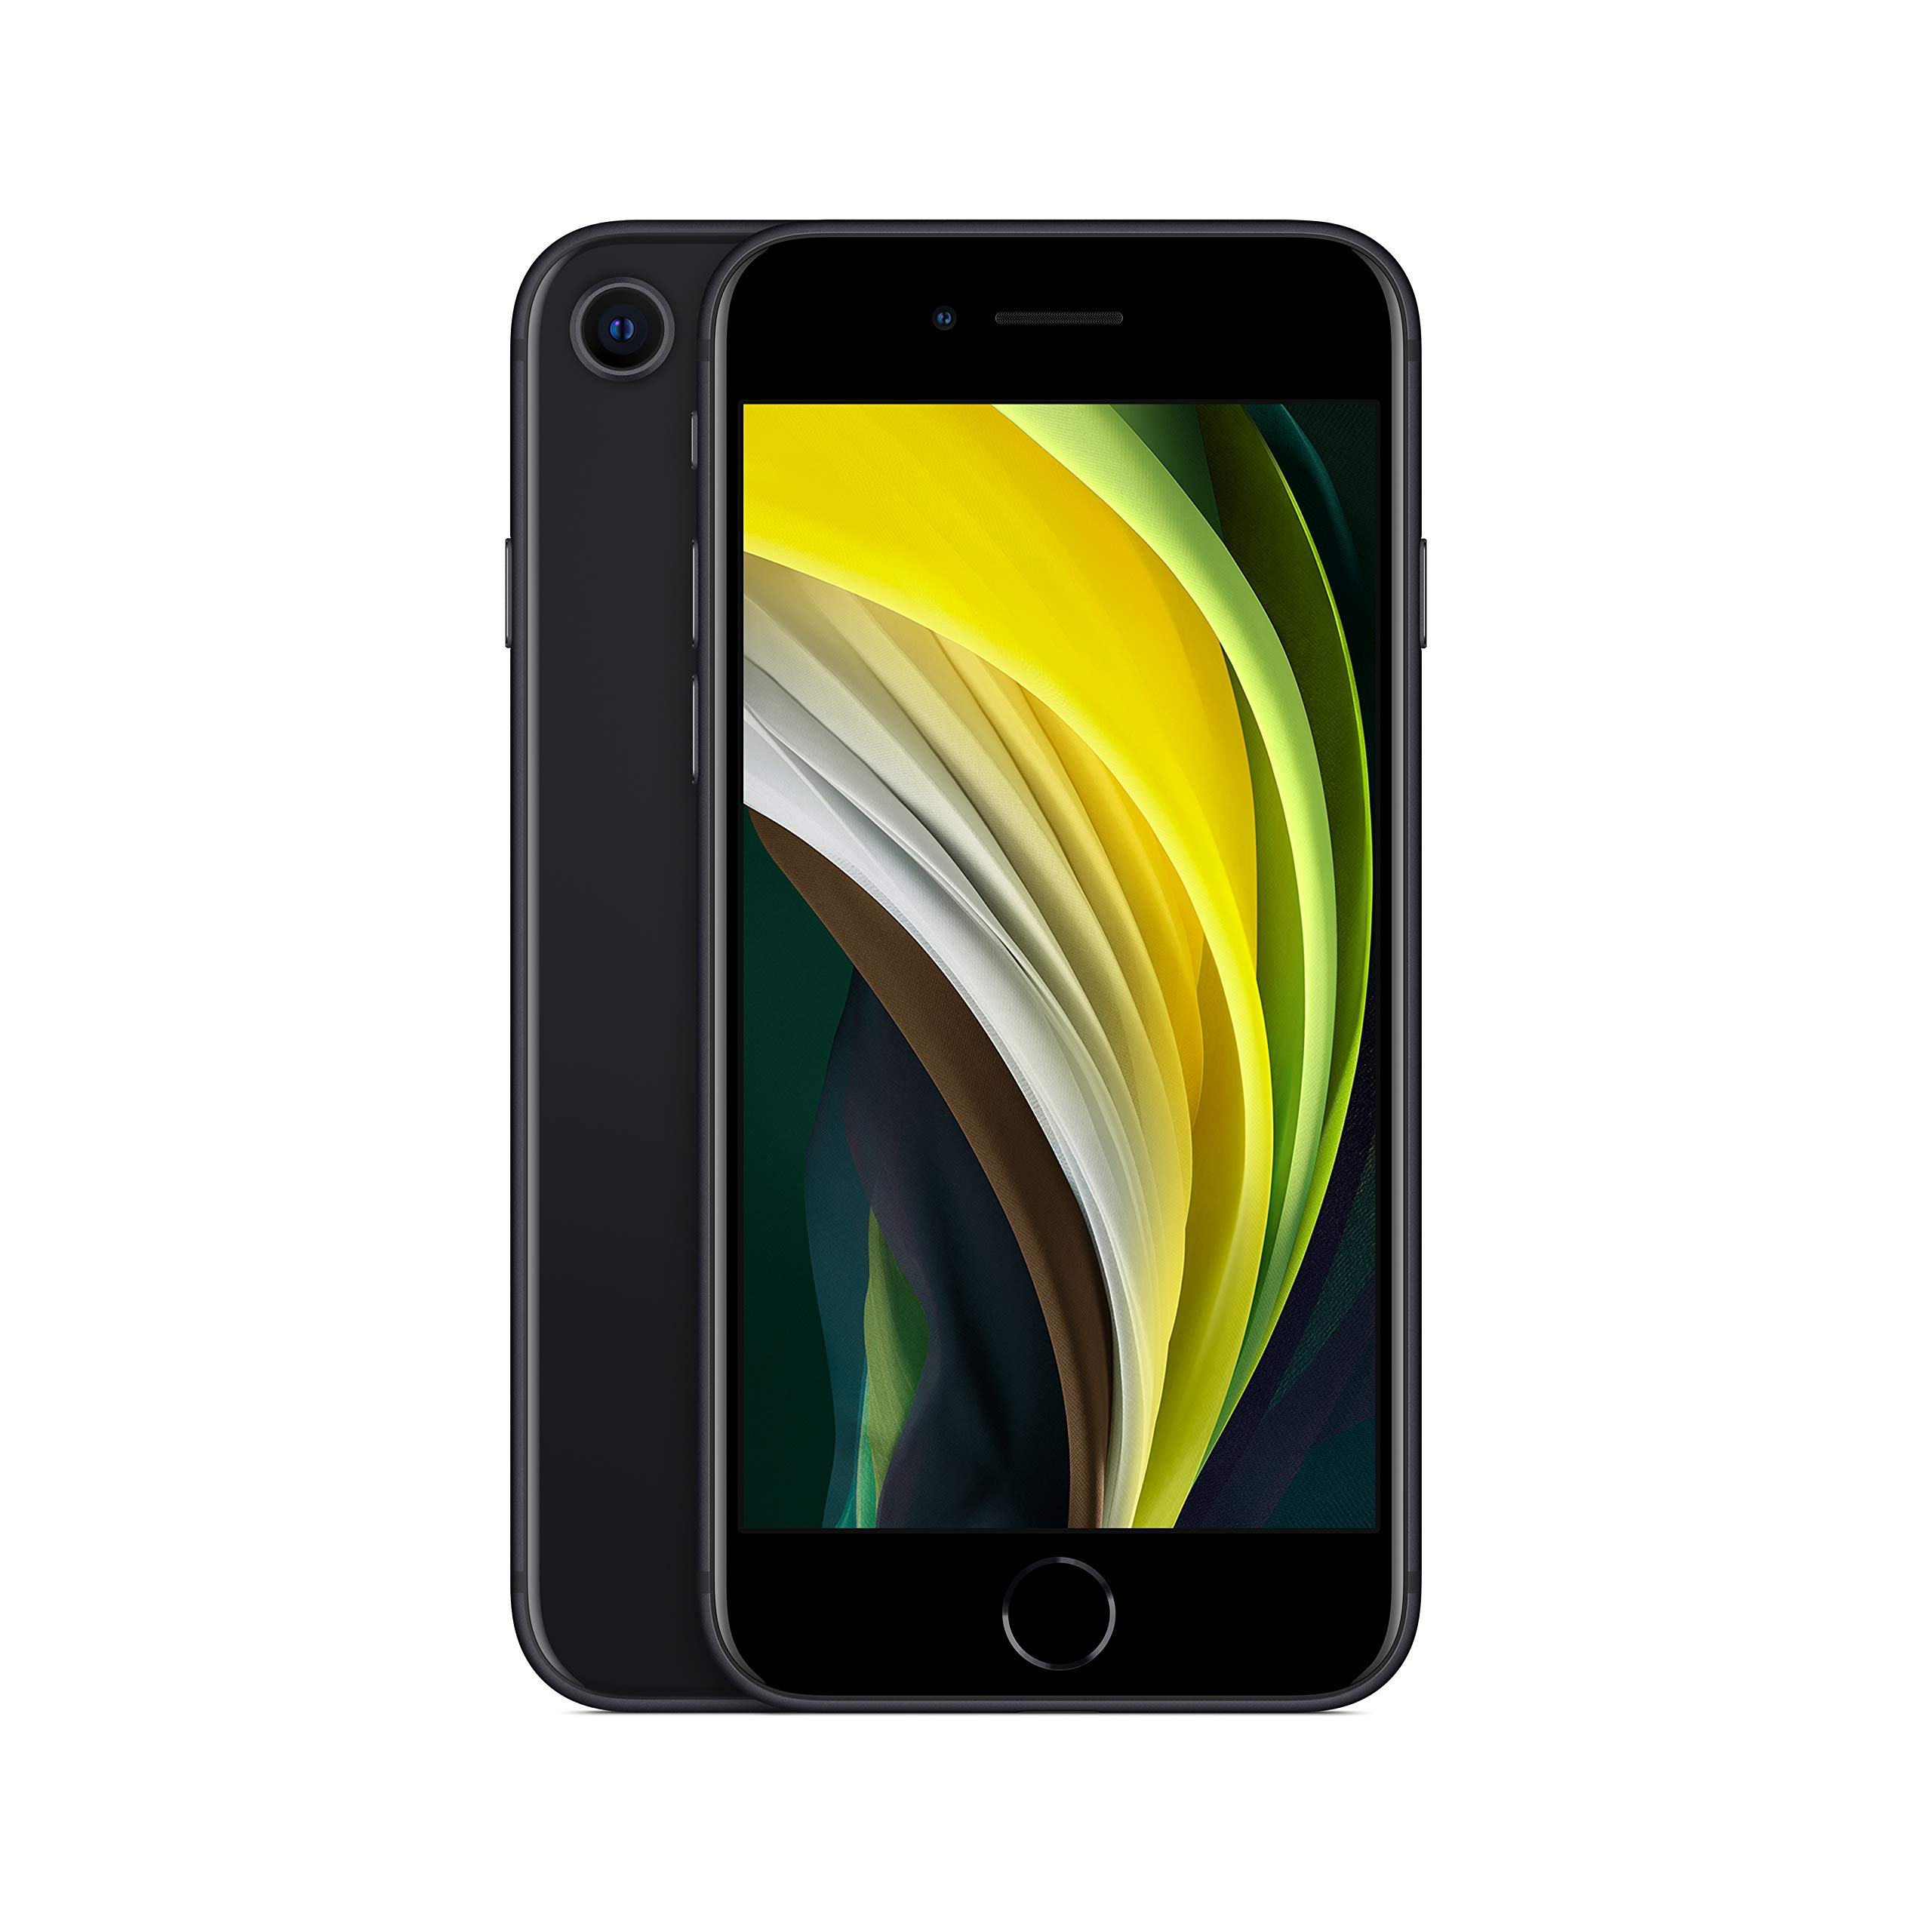 New Apple iPhone SE (64GB, Black) [Carrier Locked] + Carrier Subscription [Cricket Wireless]